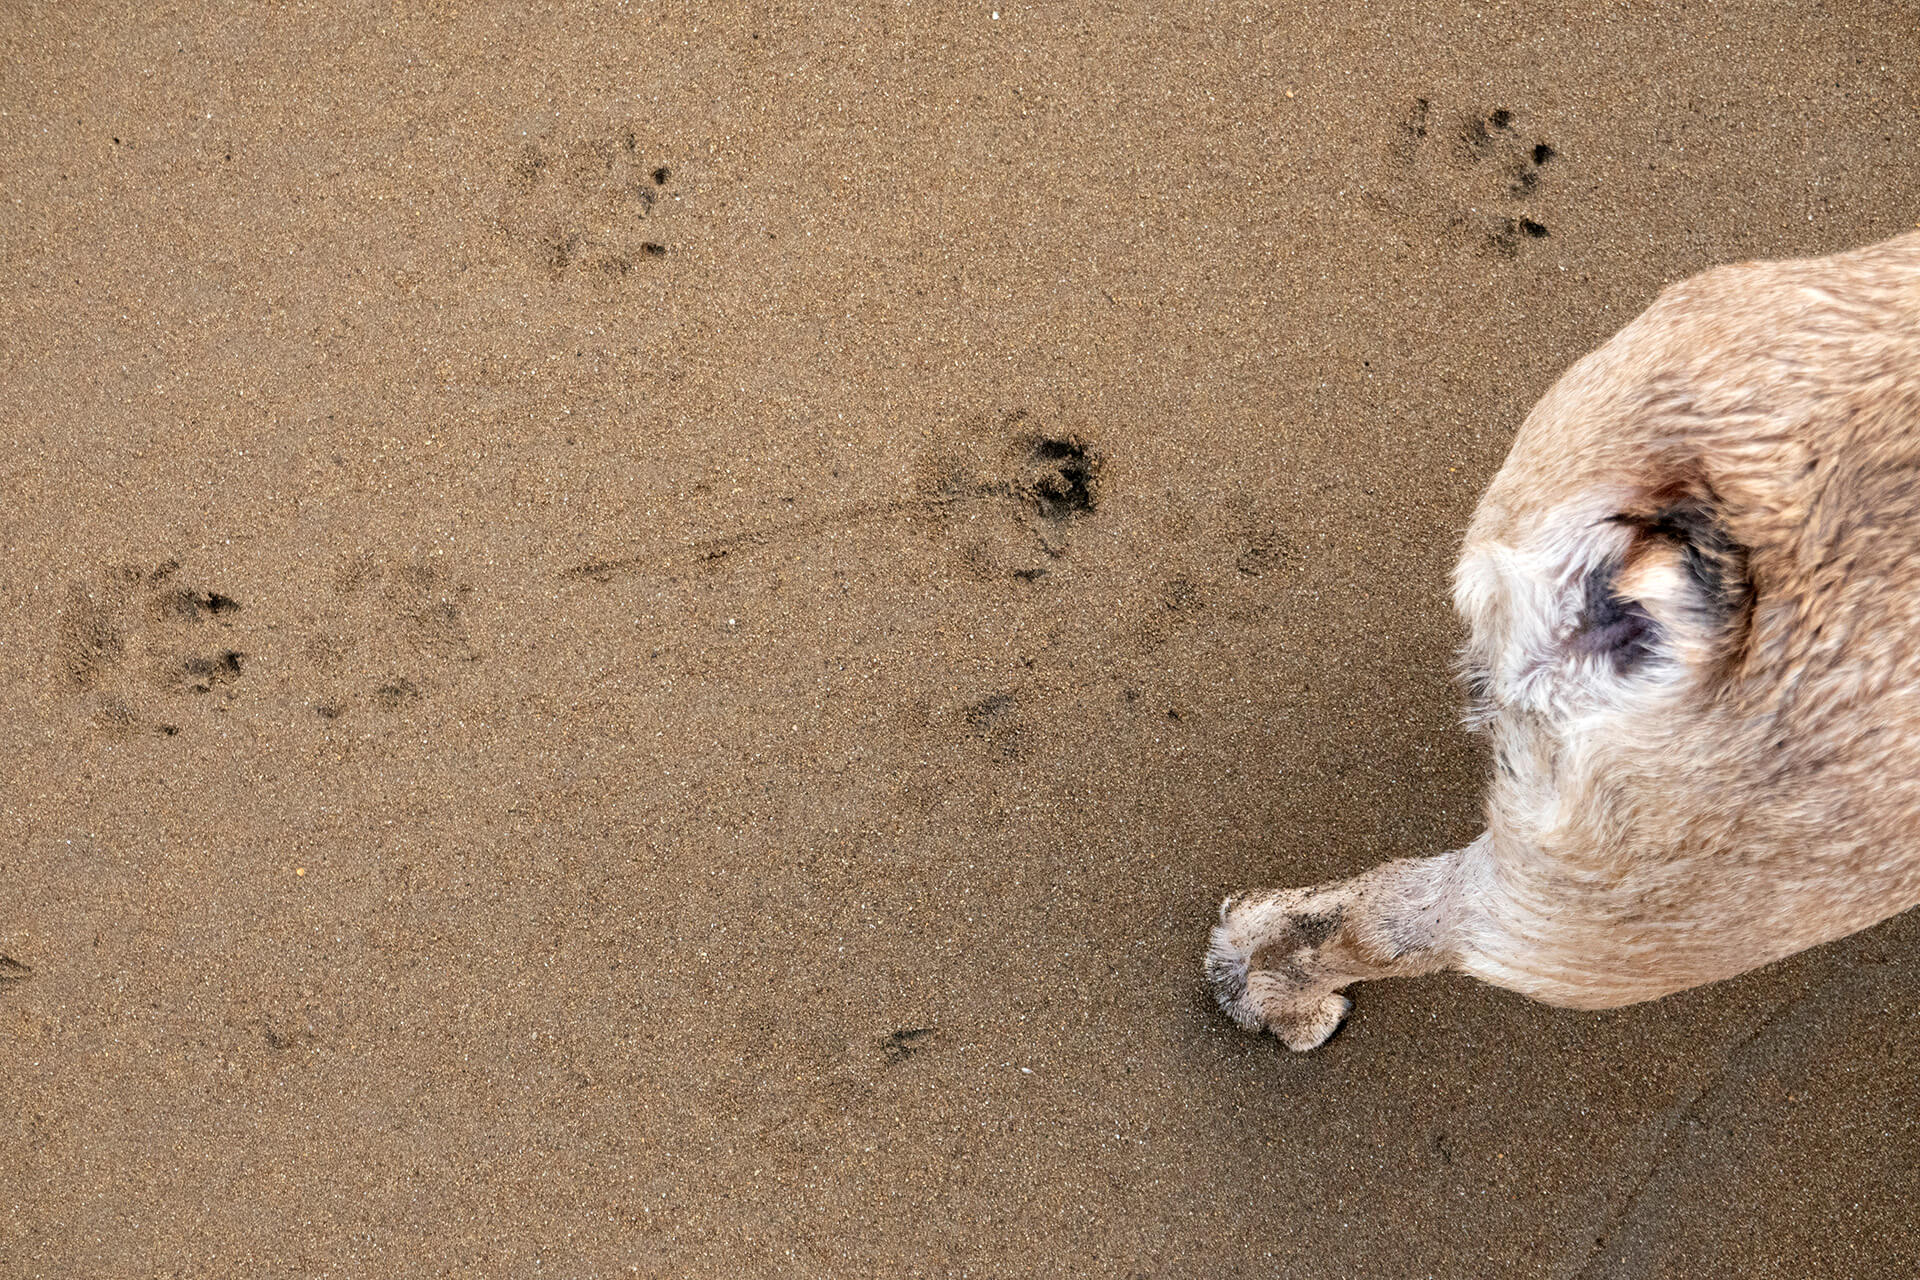 Paw prints on the sand looking as sharp as can be.